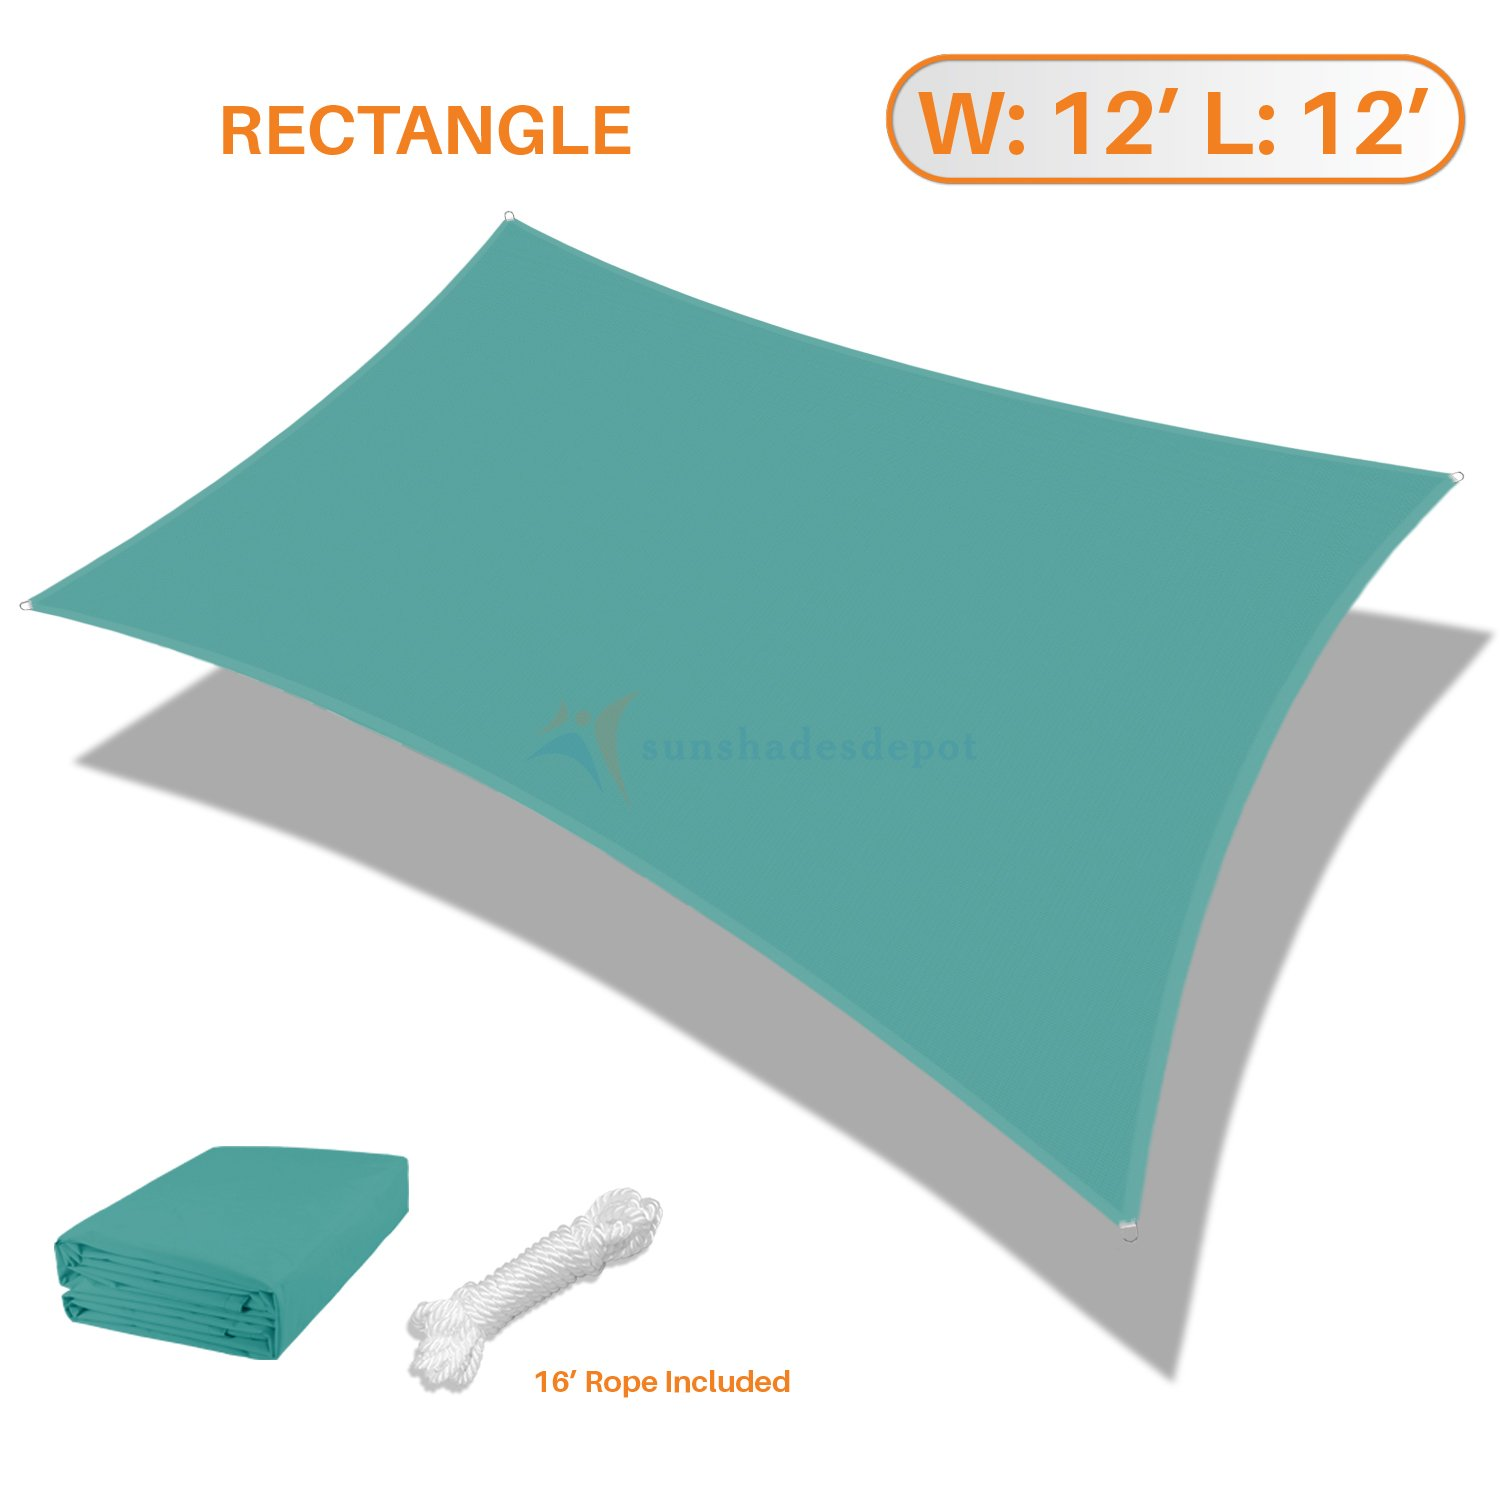 Sunshades Depot 12' x 12' Square Waterproof Knitted